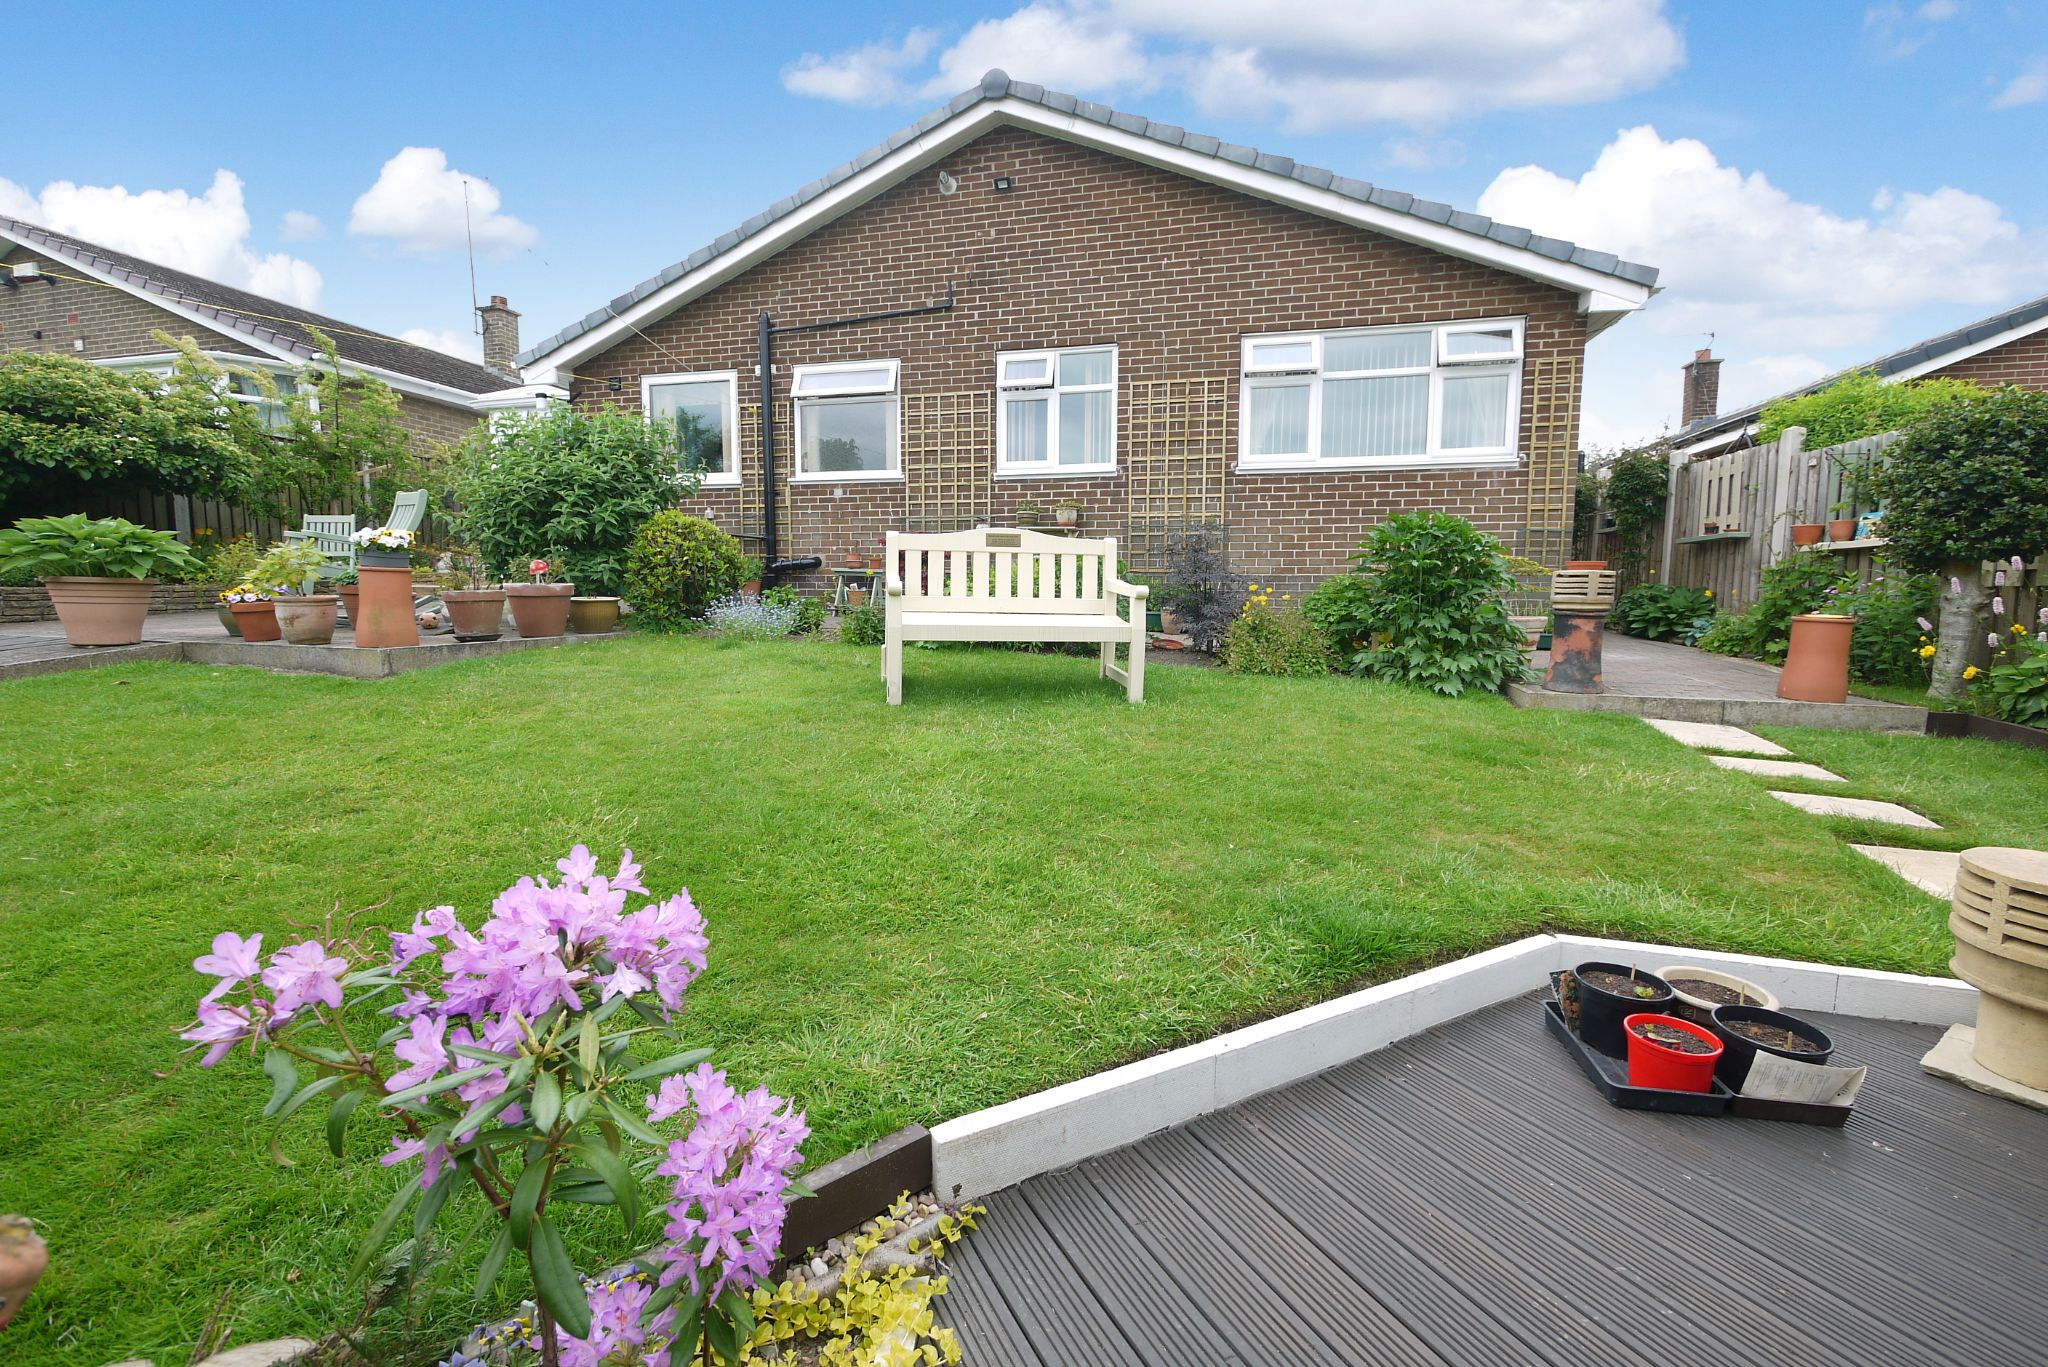 2 bedroom detached bungalow SSTC in Brighouse - Rear.